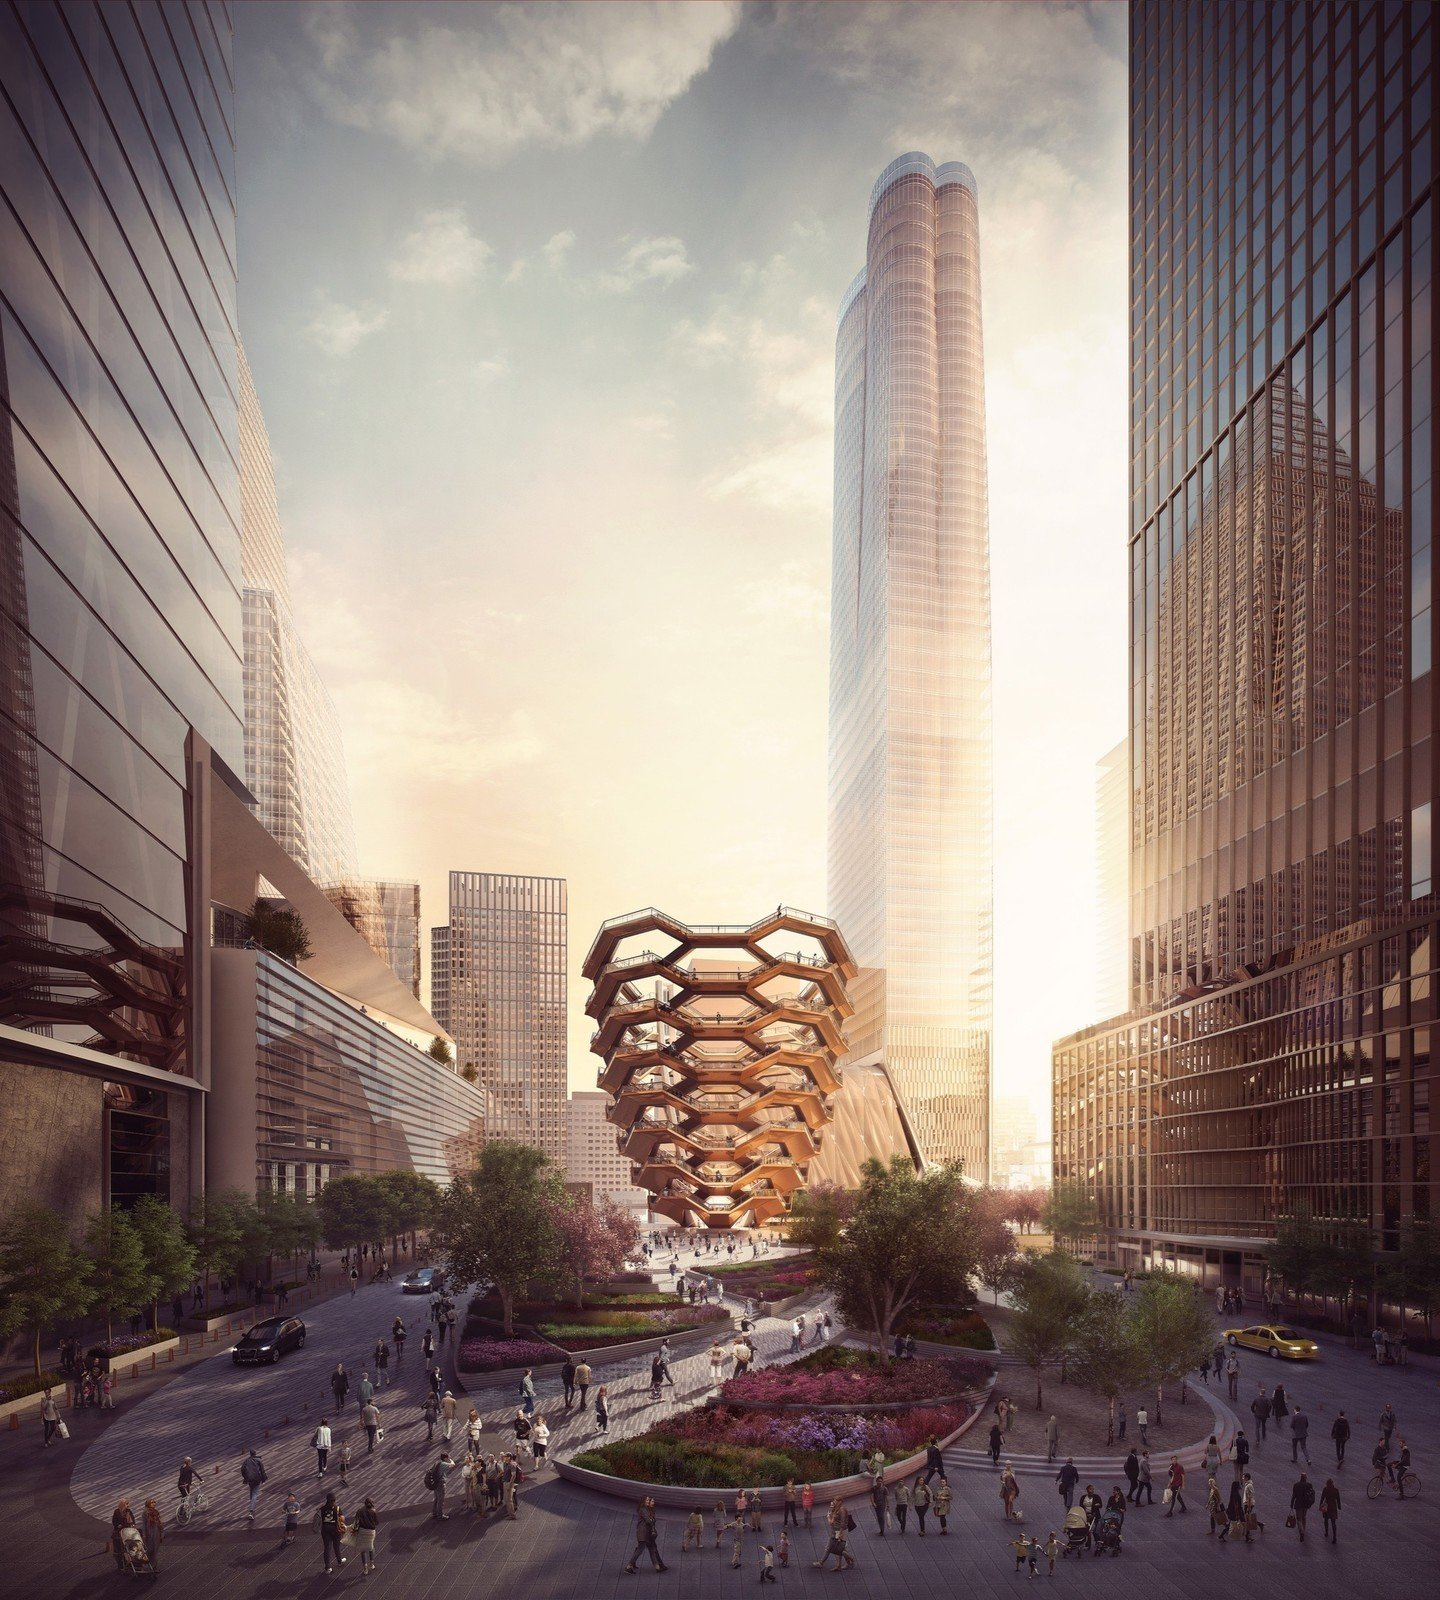 Photo 1 of 4 in A New Kind of Public Landmark: New York's Interactive Centerpiece by Heatherwick Studio